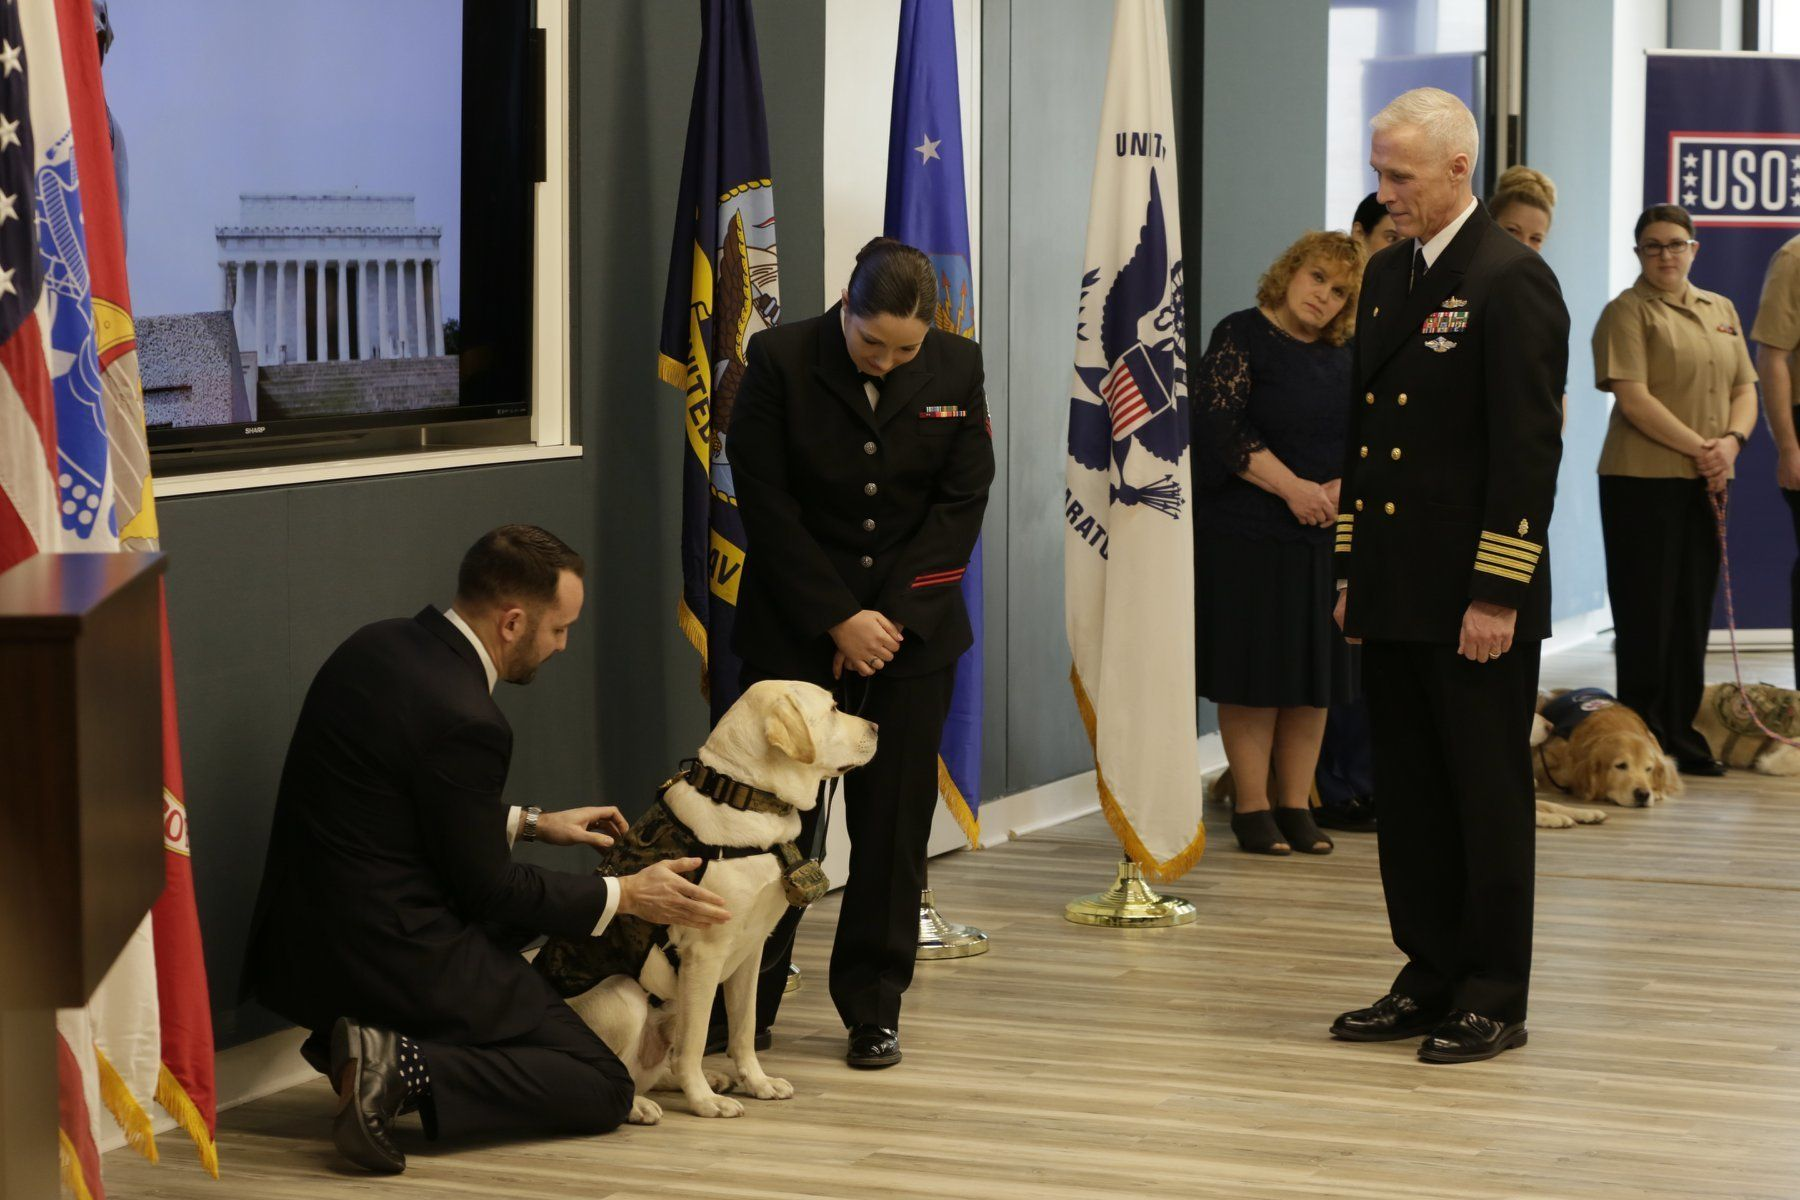 Sully the dog joined Walter Reed National Military Medical Center's Facility Dog Program in Bethesda, Maryland, on Wednesday as a sworn service dog.